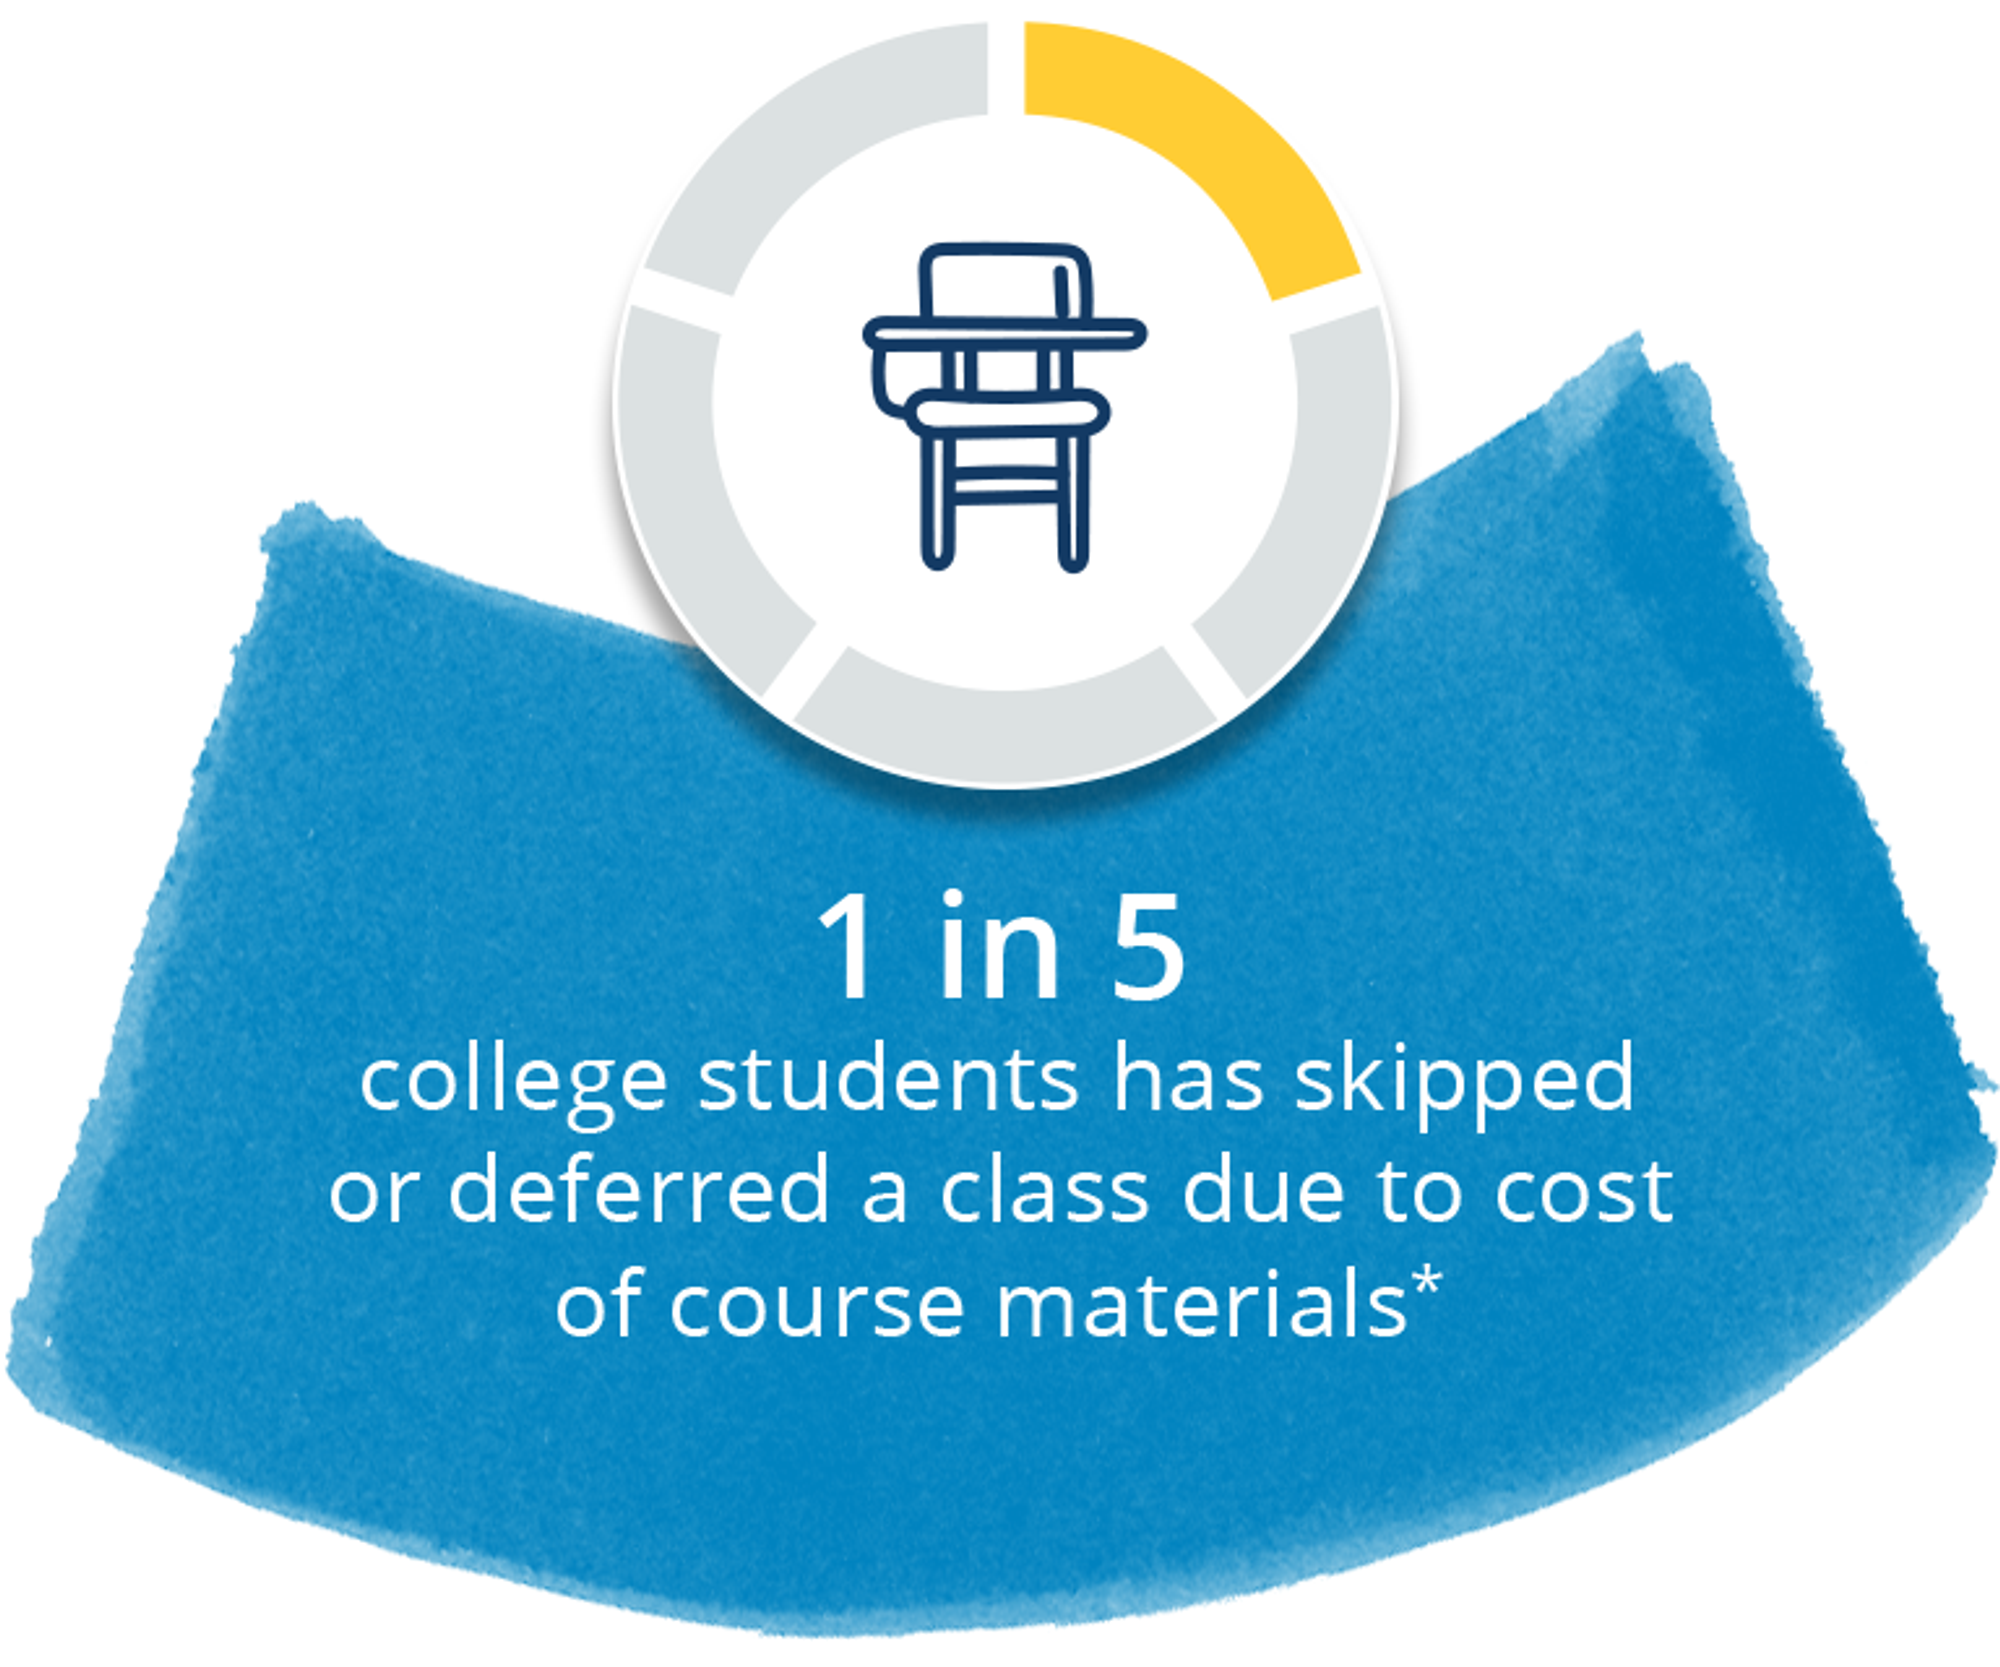 1 in 5 college students has skipped or deferred a class due to cost of course materials*